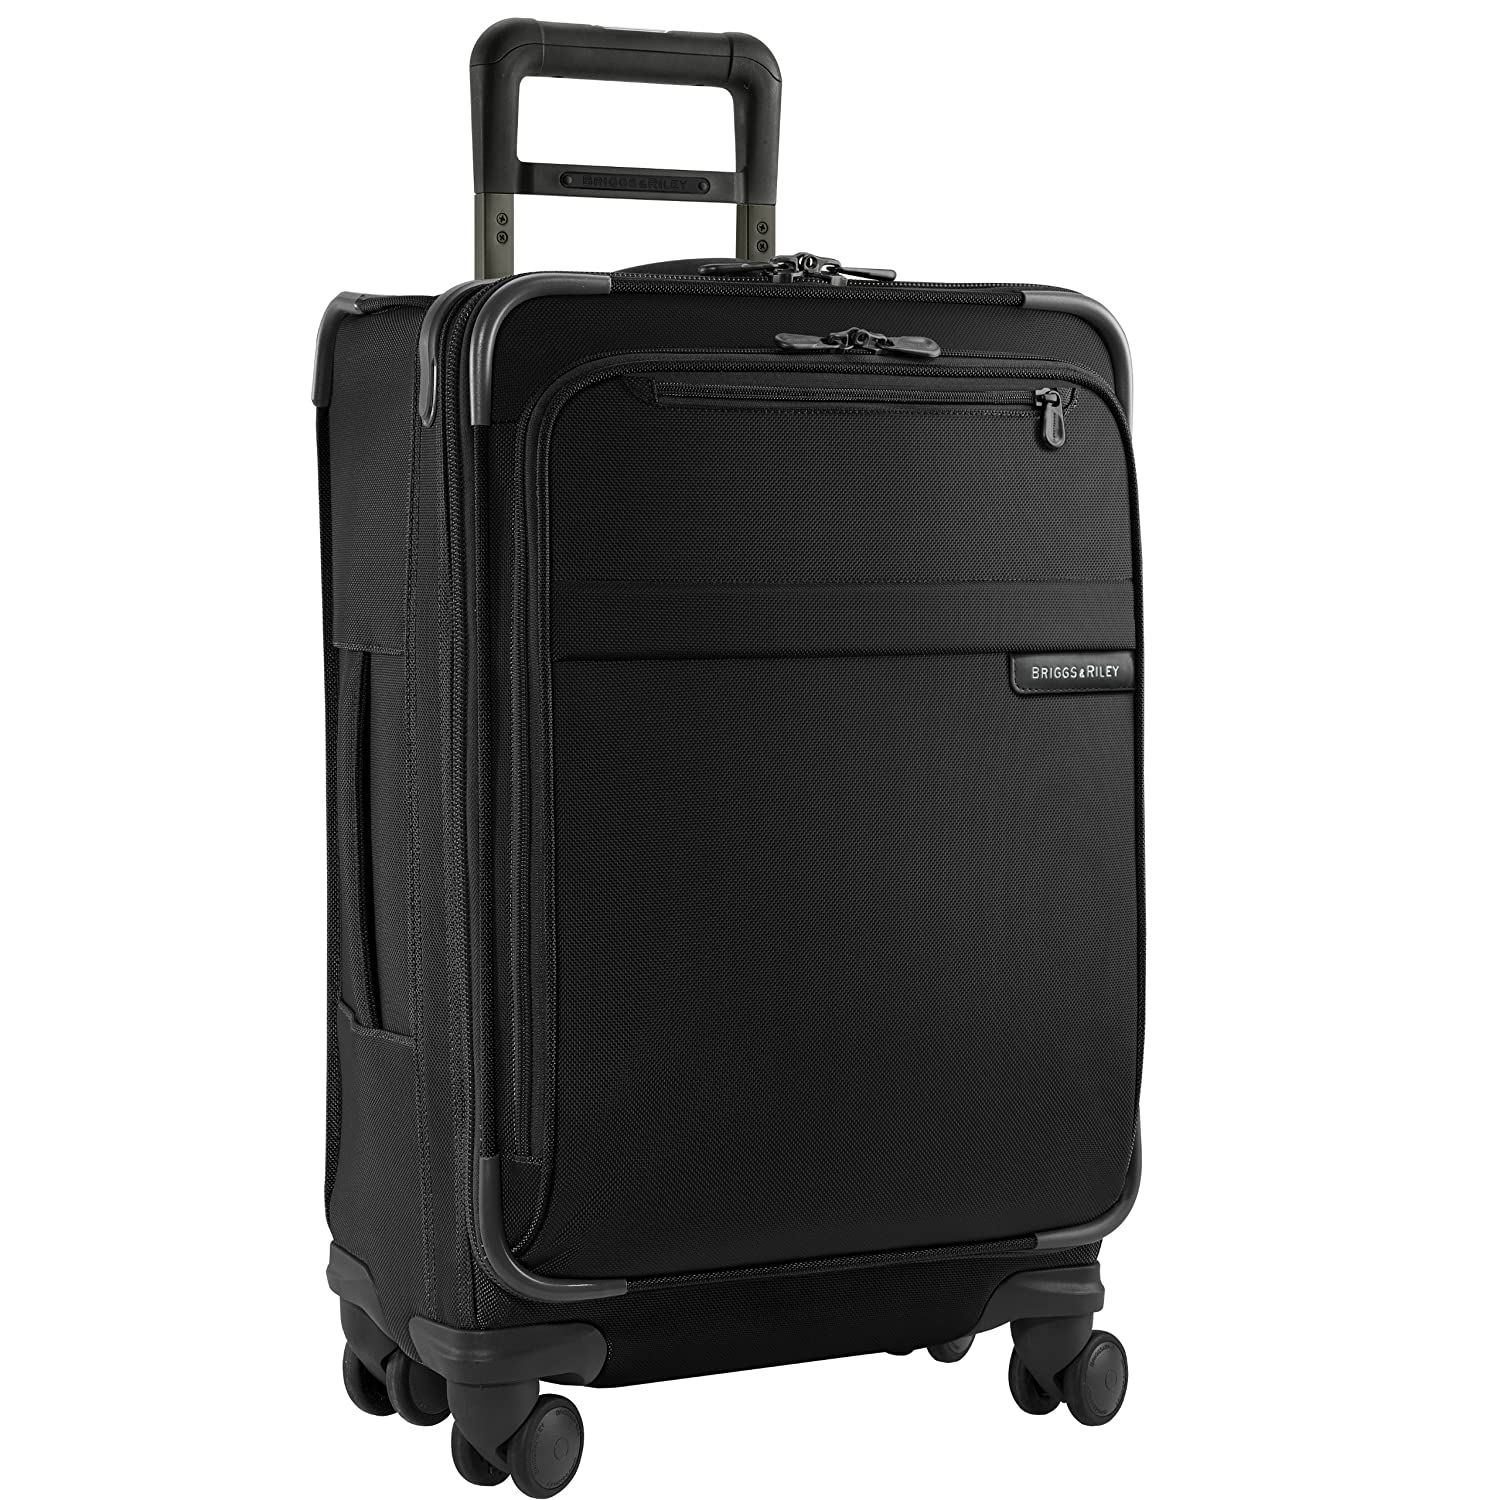 Briggs Riley Baseline Luggage Baseline Domestic Carry-On Spinner Bag, Black, Medium